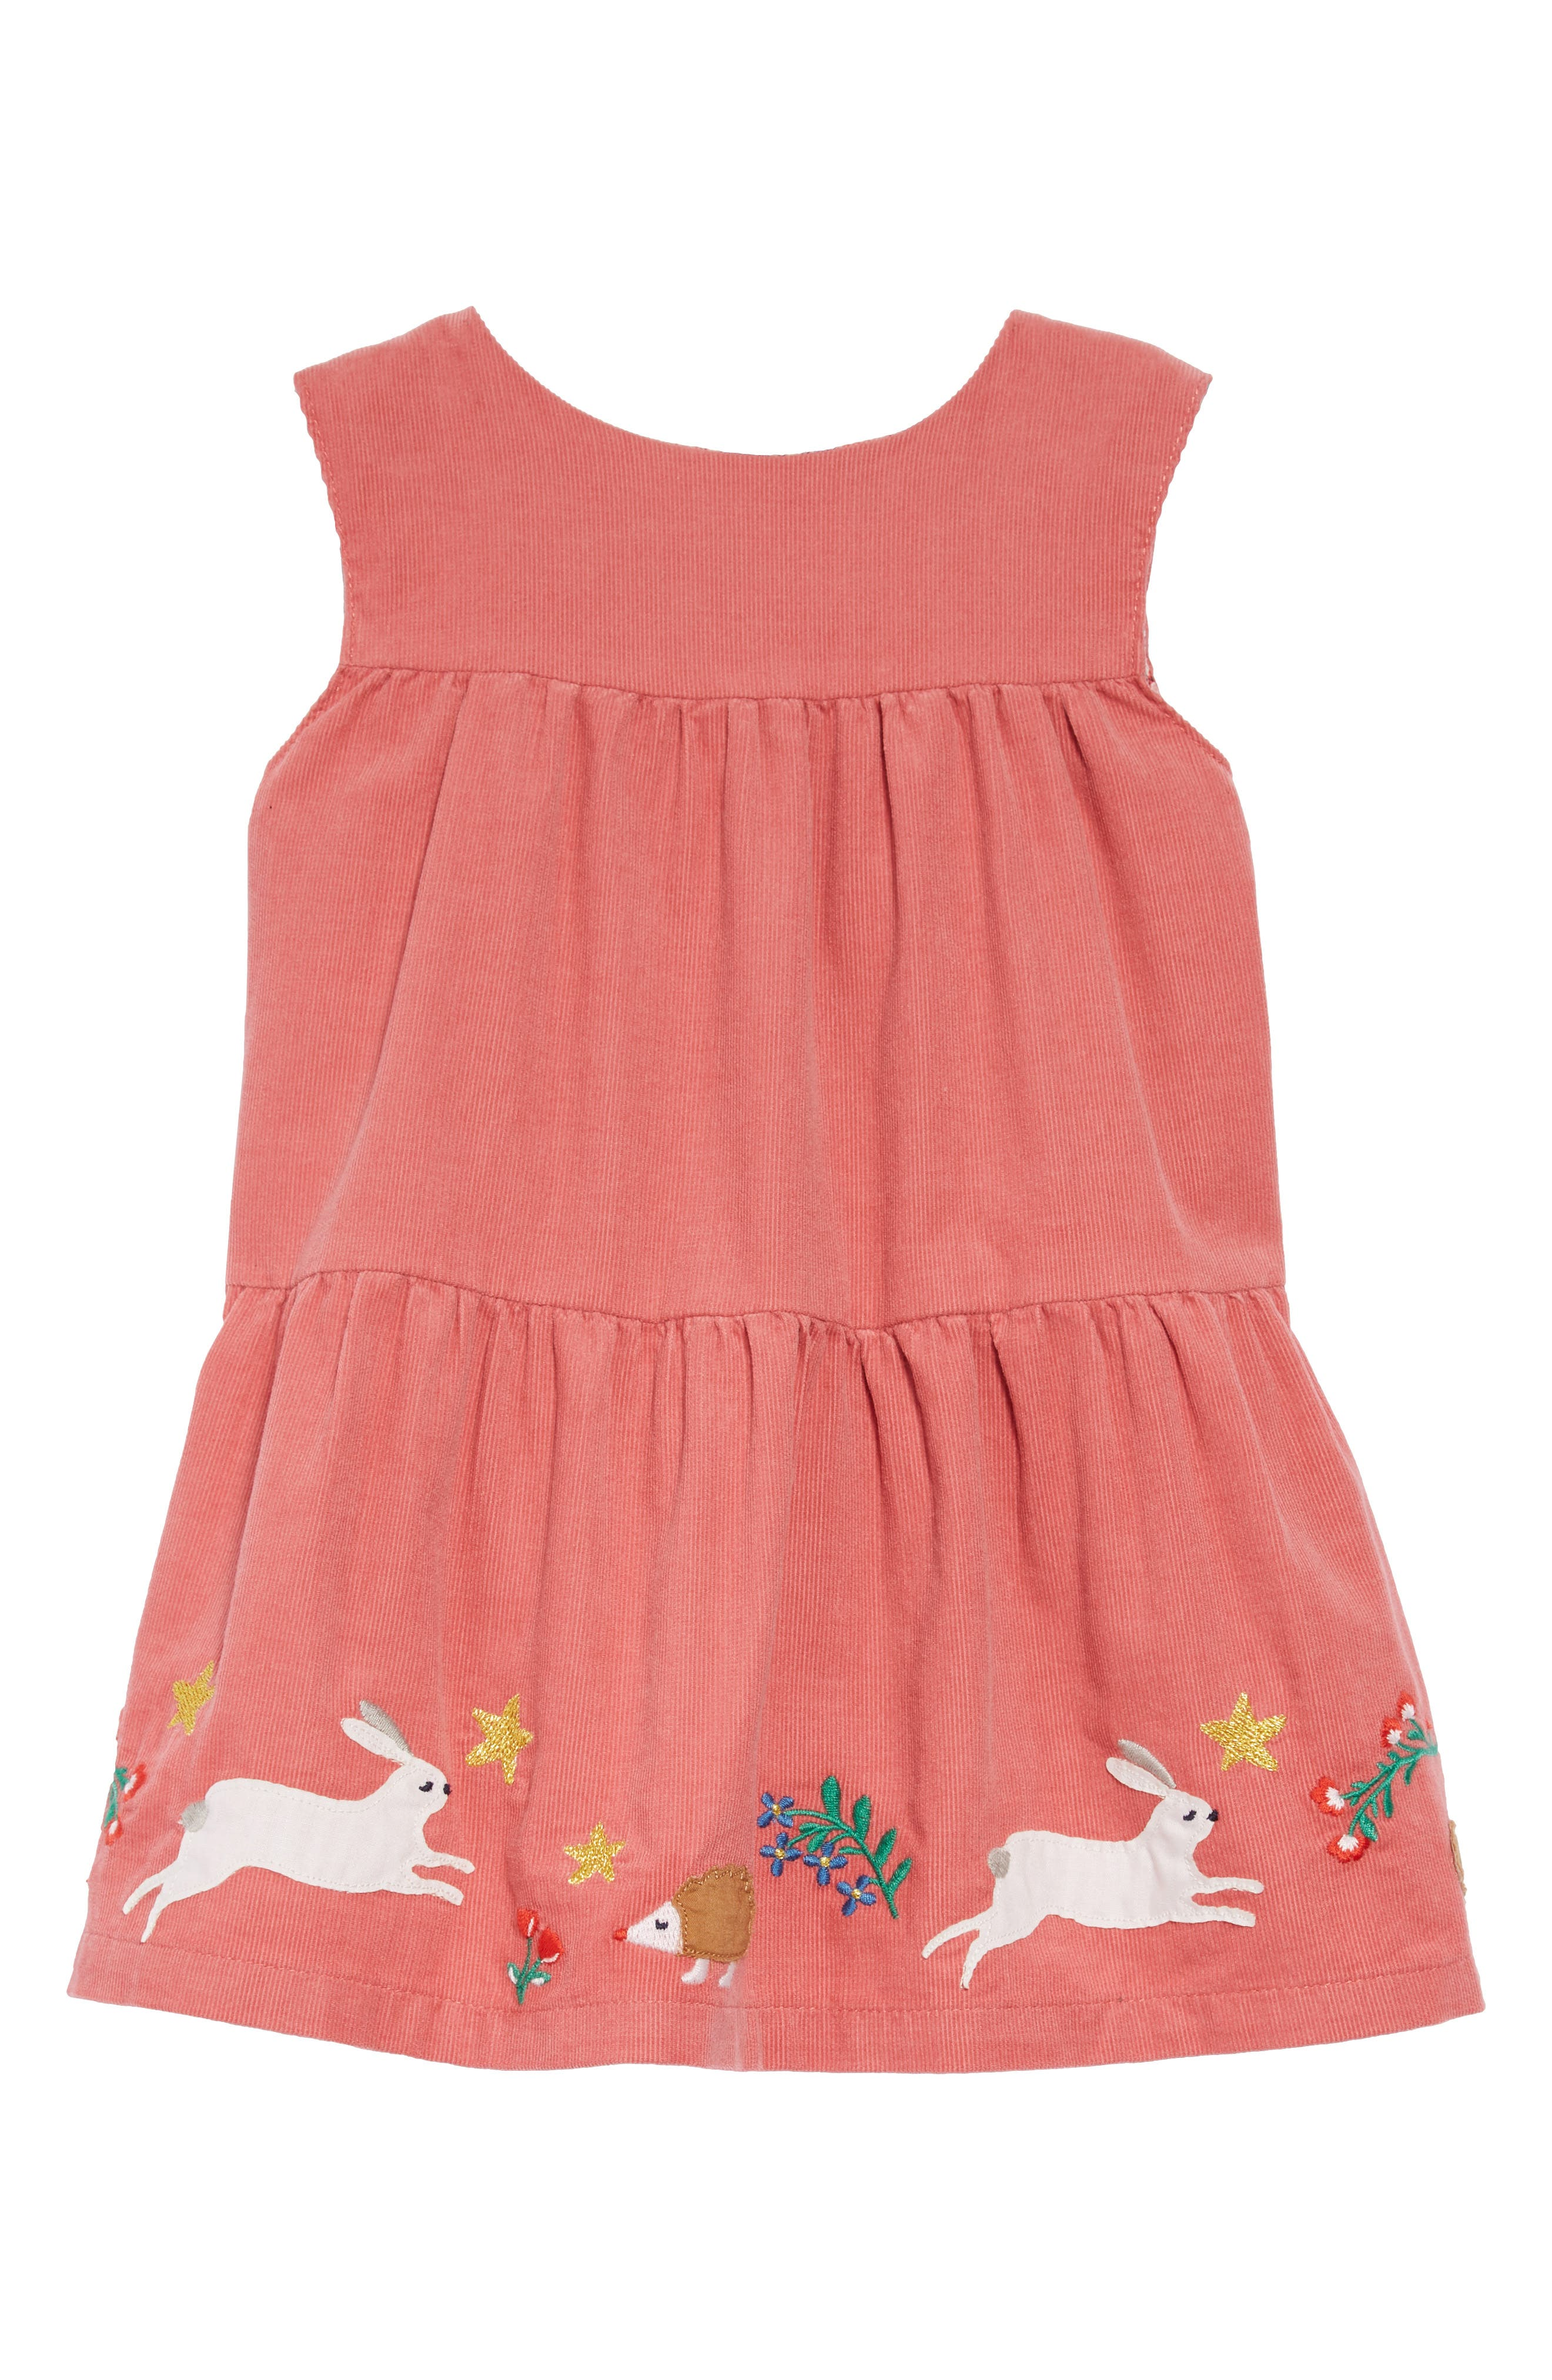 MINI BODEN,                             Tiered Corduroy Dress,                             Main thumbnail 1, color,                             664